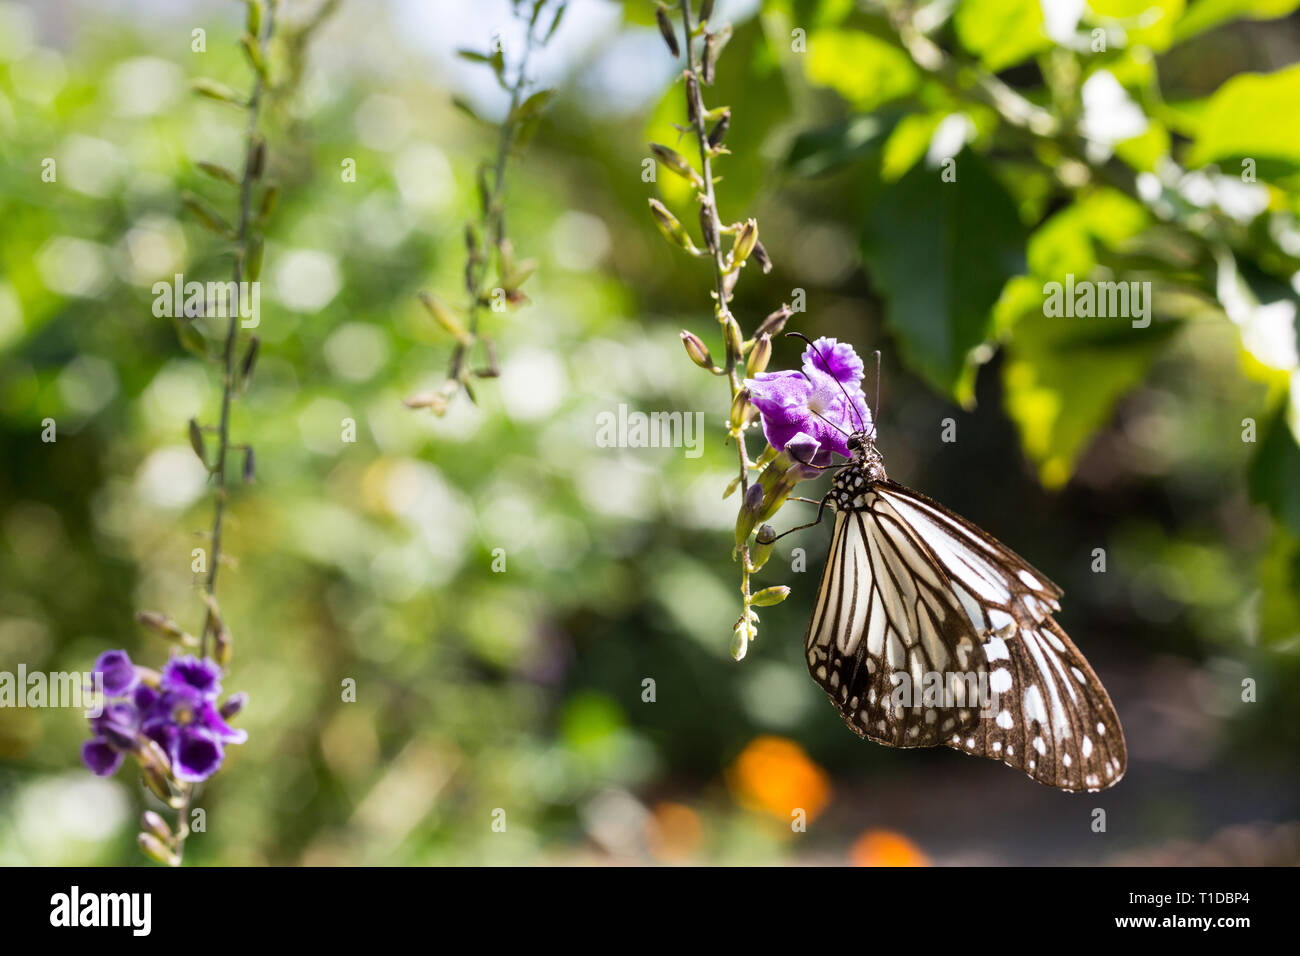 splash of color with  brown butterfly close-up on a flower with purple color - Stock Image